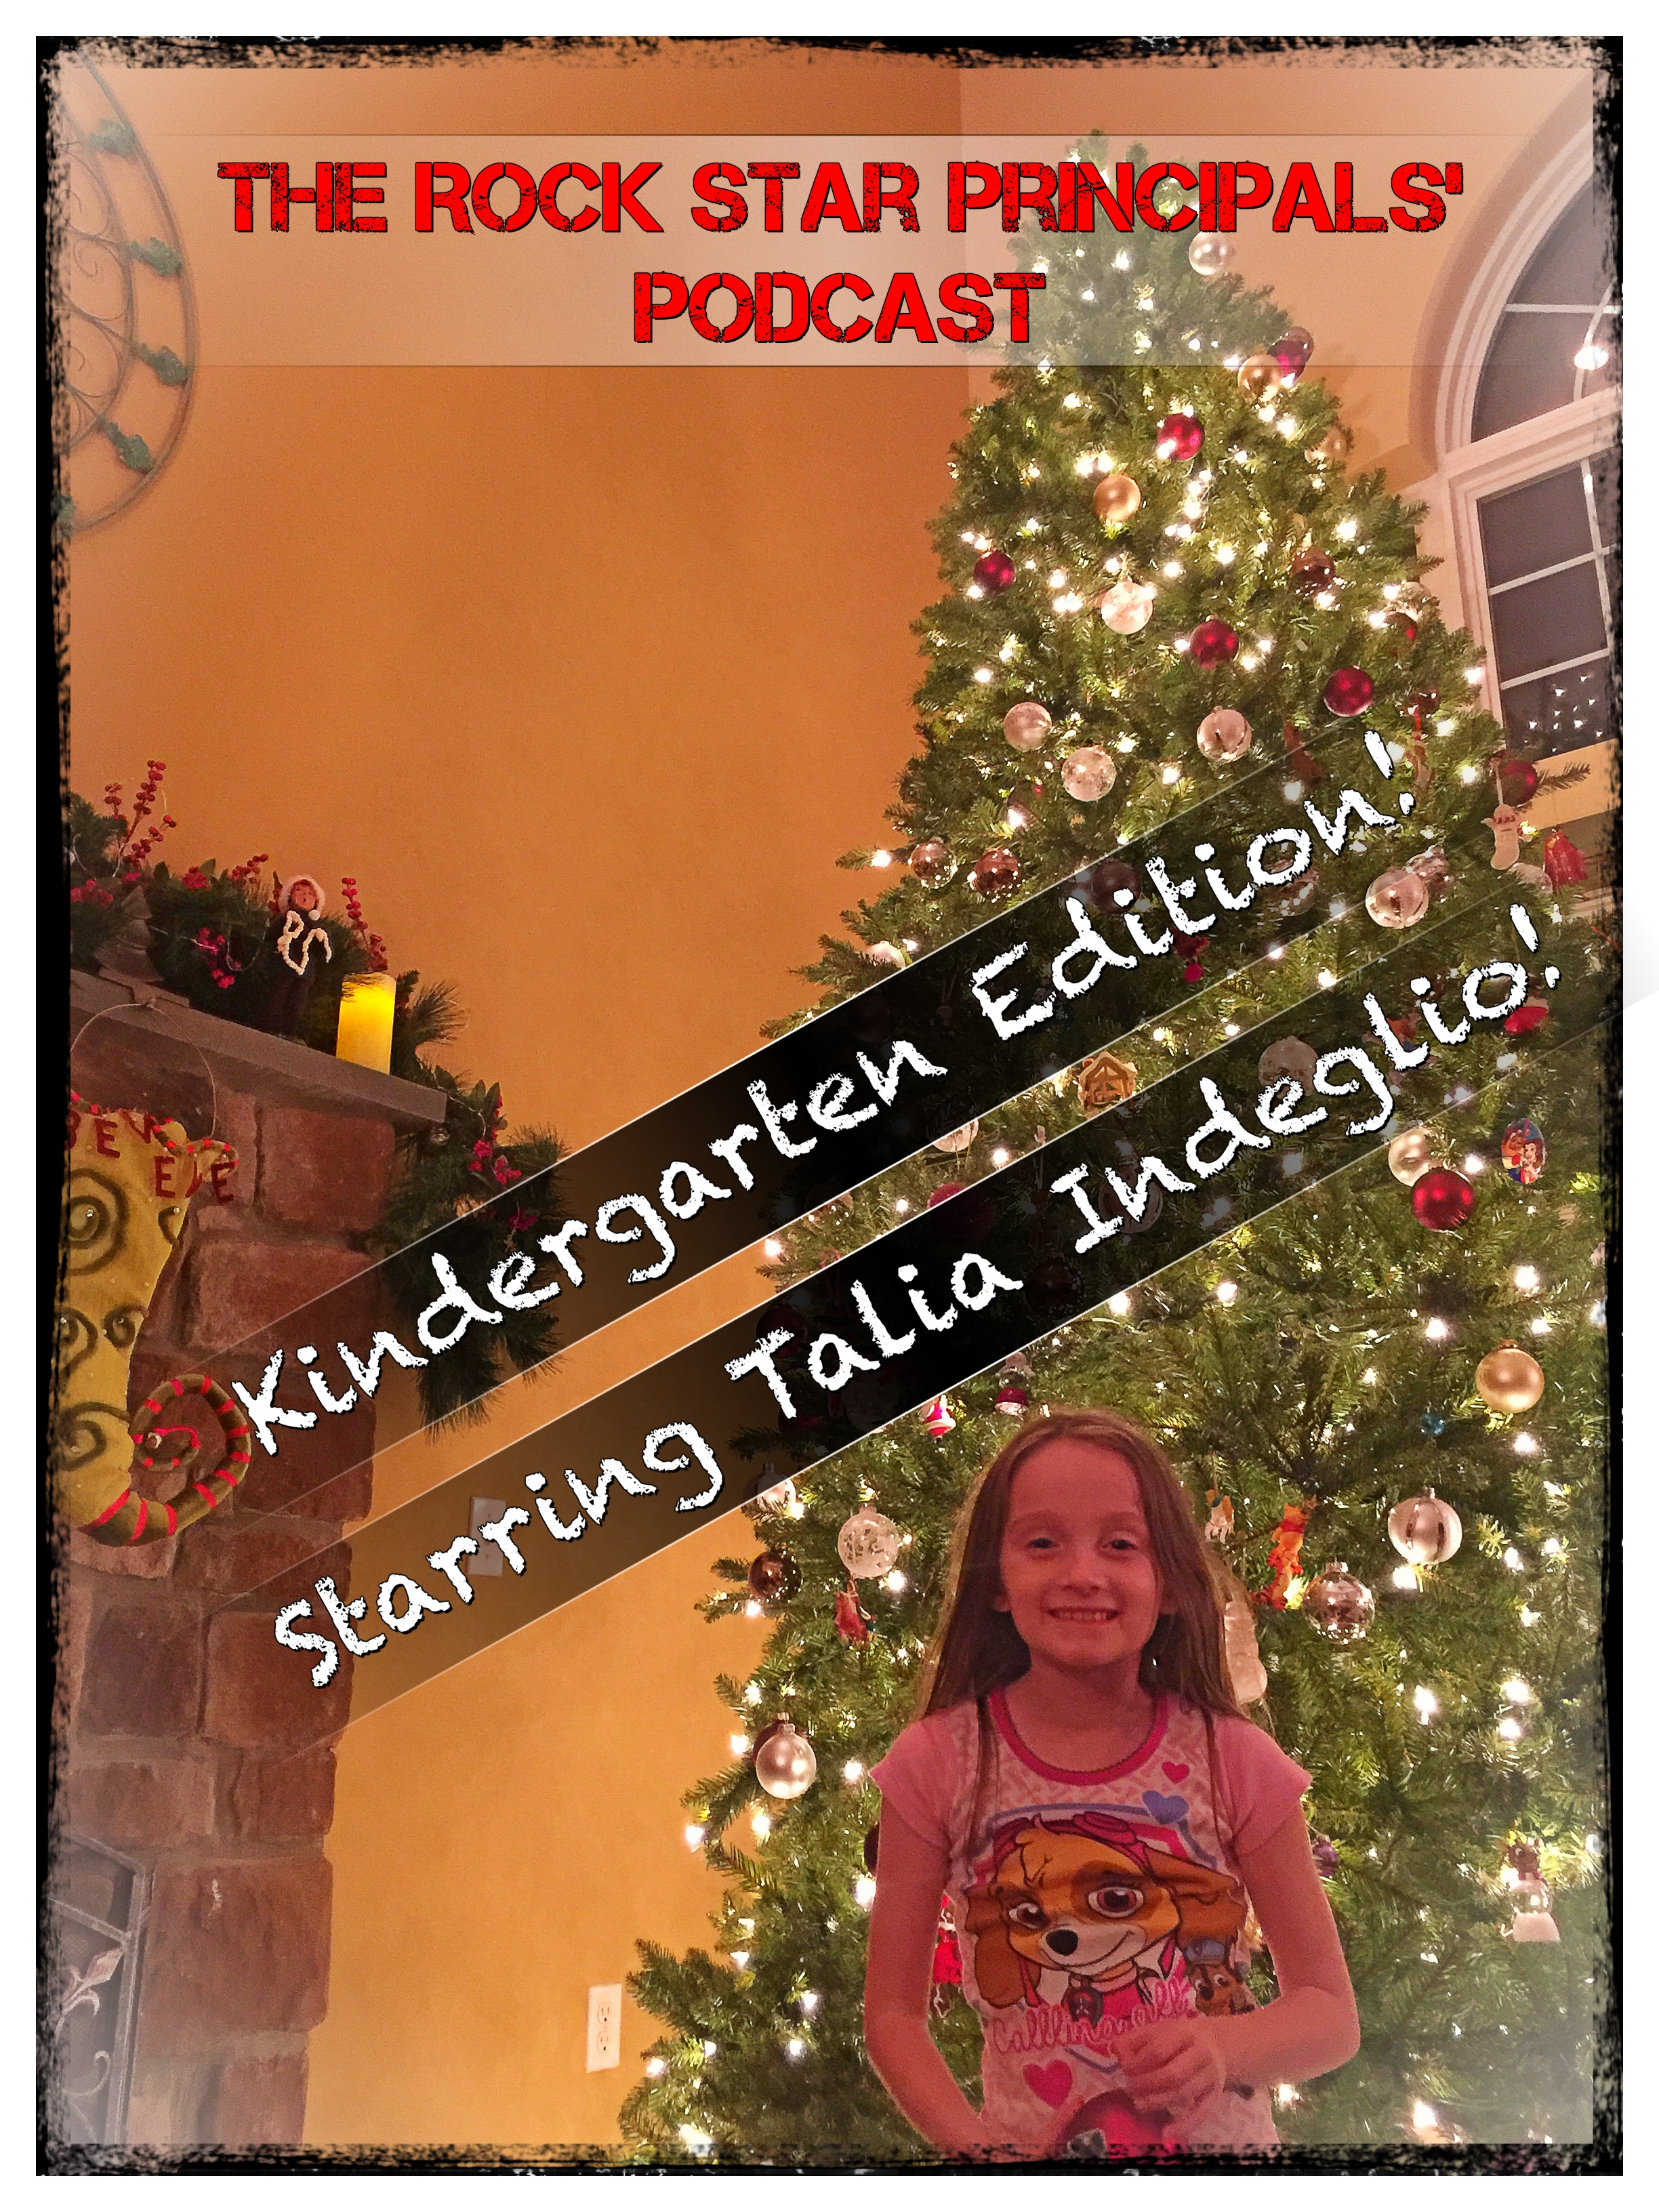 Kindergarten Edition: The Rock Star Principals' Podcast with Talia Toots!